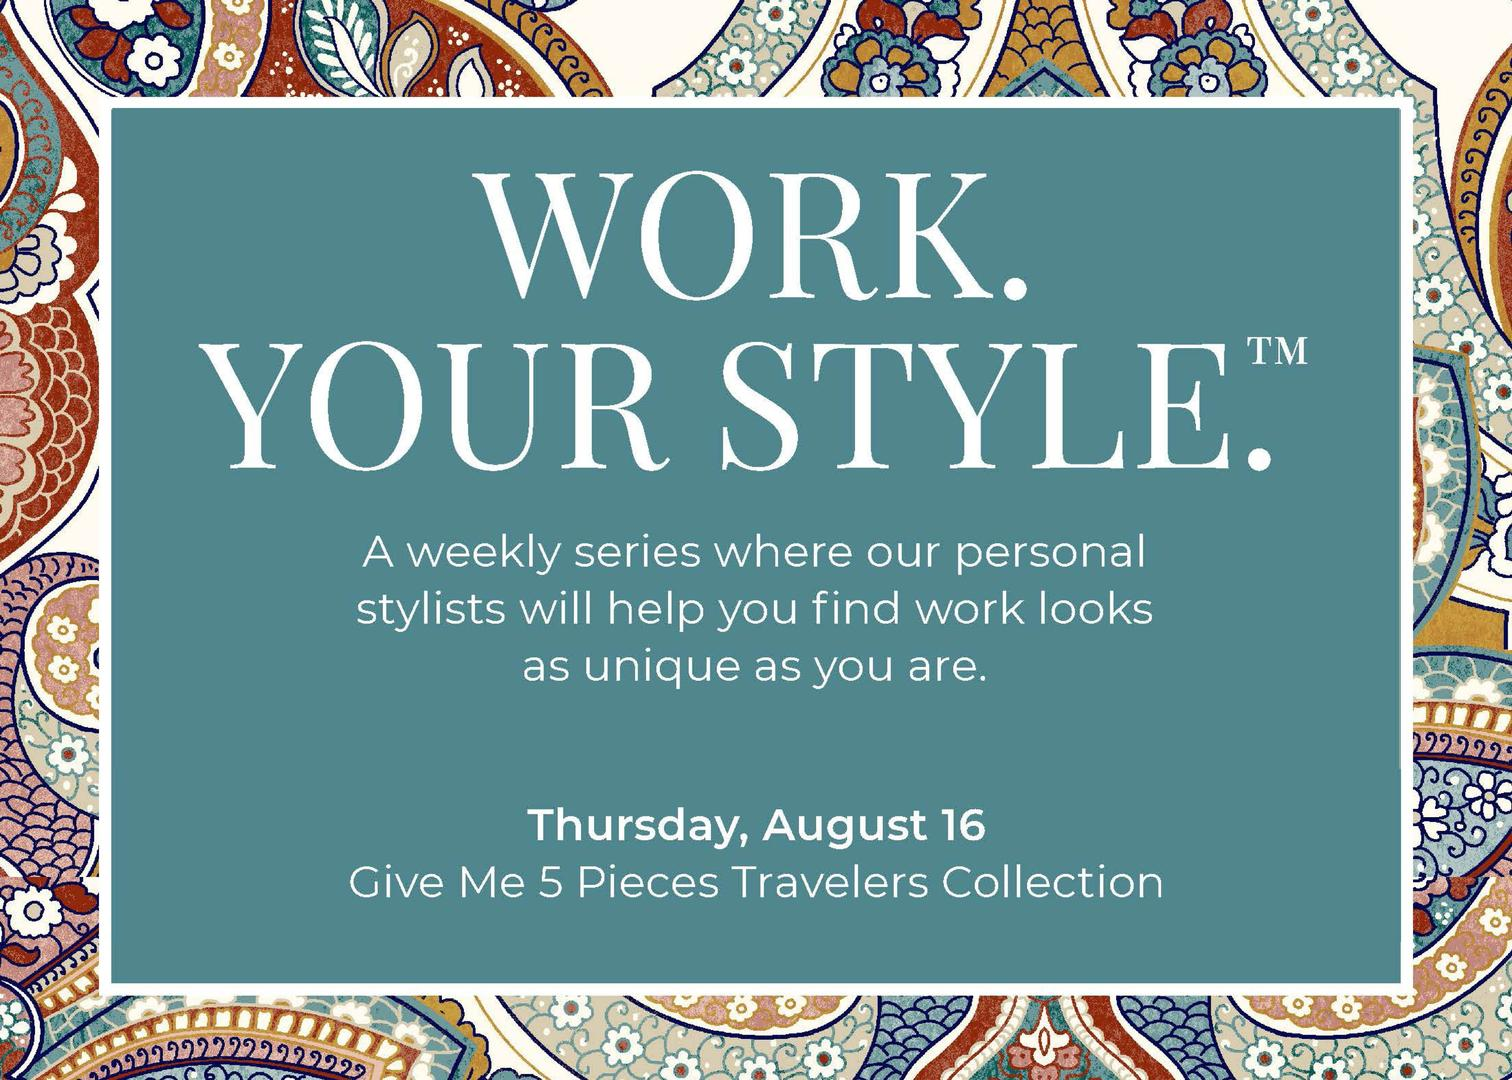 Crossroads Center, Work You Style- Give Me 5 Pieces Travelers Collection  Event Image: 4101 W Division St, Sce B20, Saint Cloud, MN 56301, US